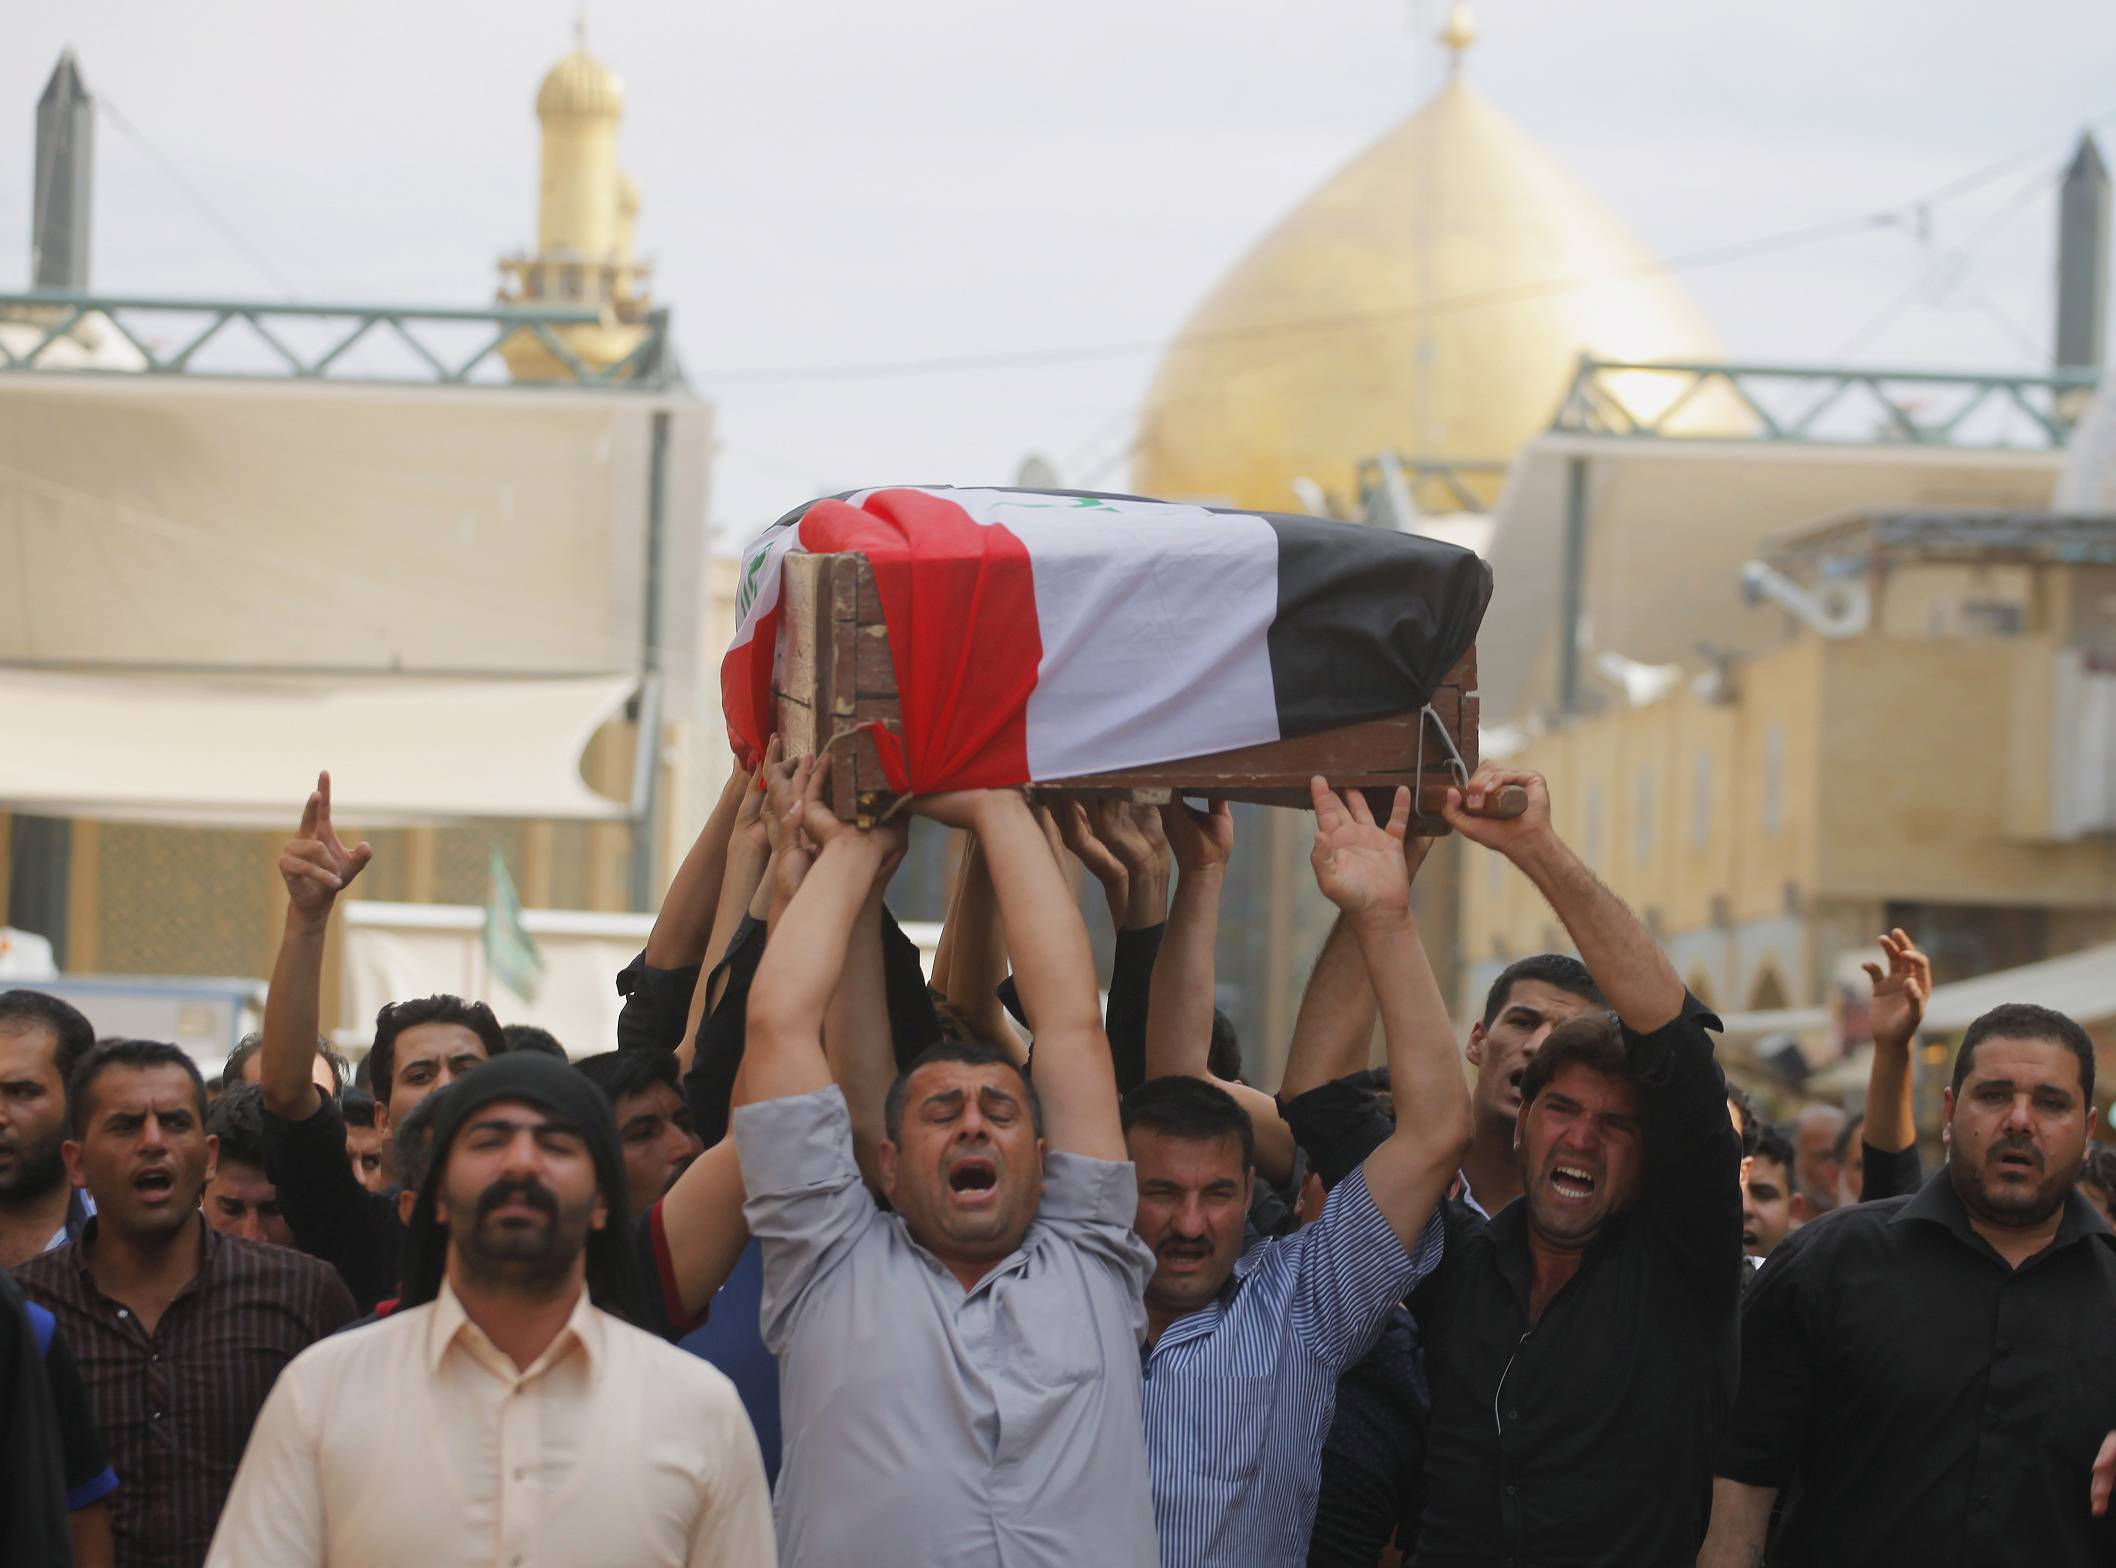 Mourners chant slogans against the al-Qaida breakaway group Islamic State of Iraq and the Levant (ISIL), while carrying a flag-draped coffin of Ahmed Marzouk an Iraqi officer who was killed, said his family, in a fake checkpoint on Thursday, during his funeral procession in the Shiite holy city of Najaf, 100 miles south of Baghdad, Iraq, Friday, May 16, 2014.